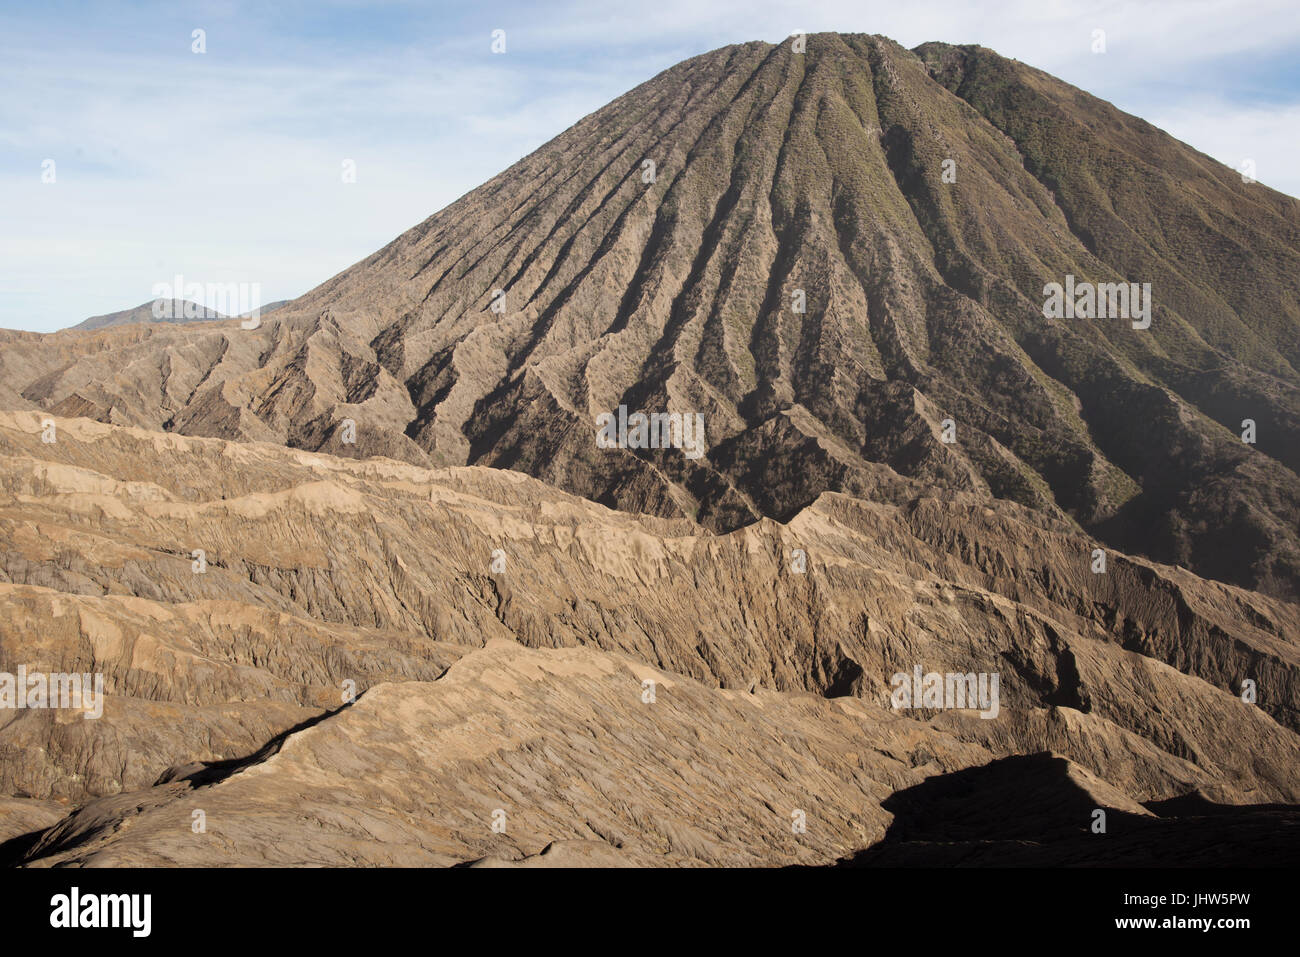 Volcanic cone within the caldeira of Mount Bromo active volcano, East Java Indonesia. - Stock Image